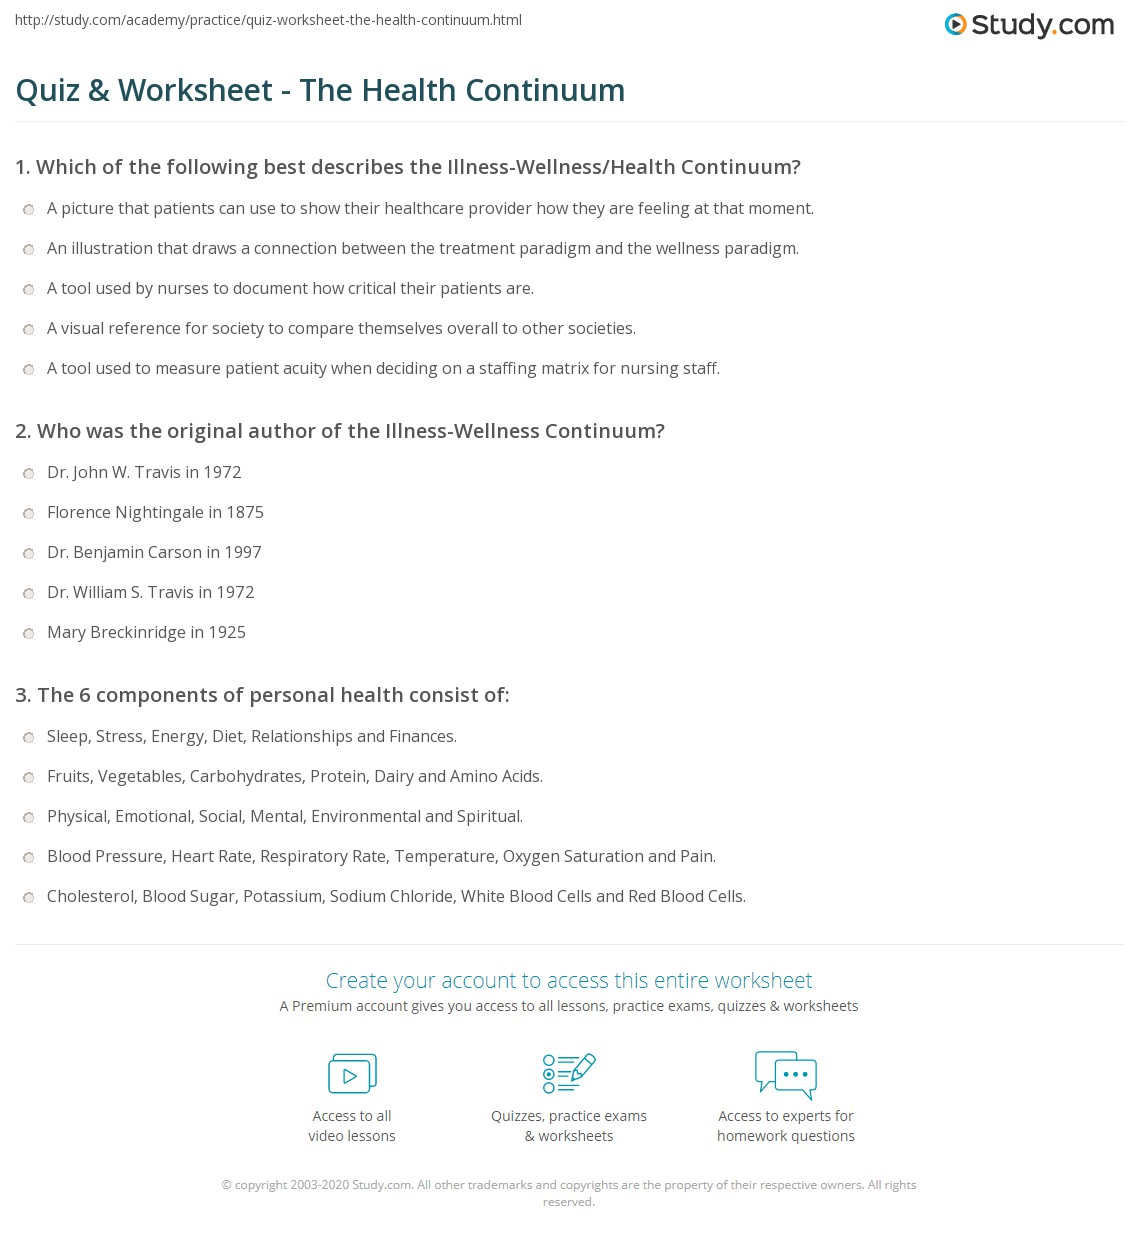 Worksheets Mental Health Wellness Worksheets collection of health and wellness worksheets sharebrowse worksheets